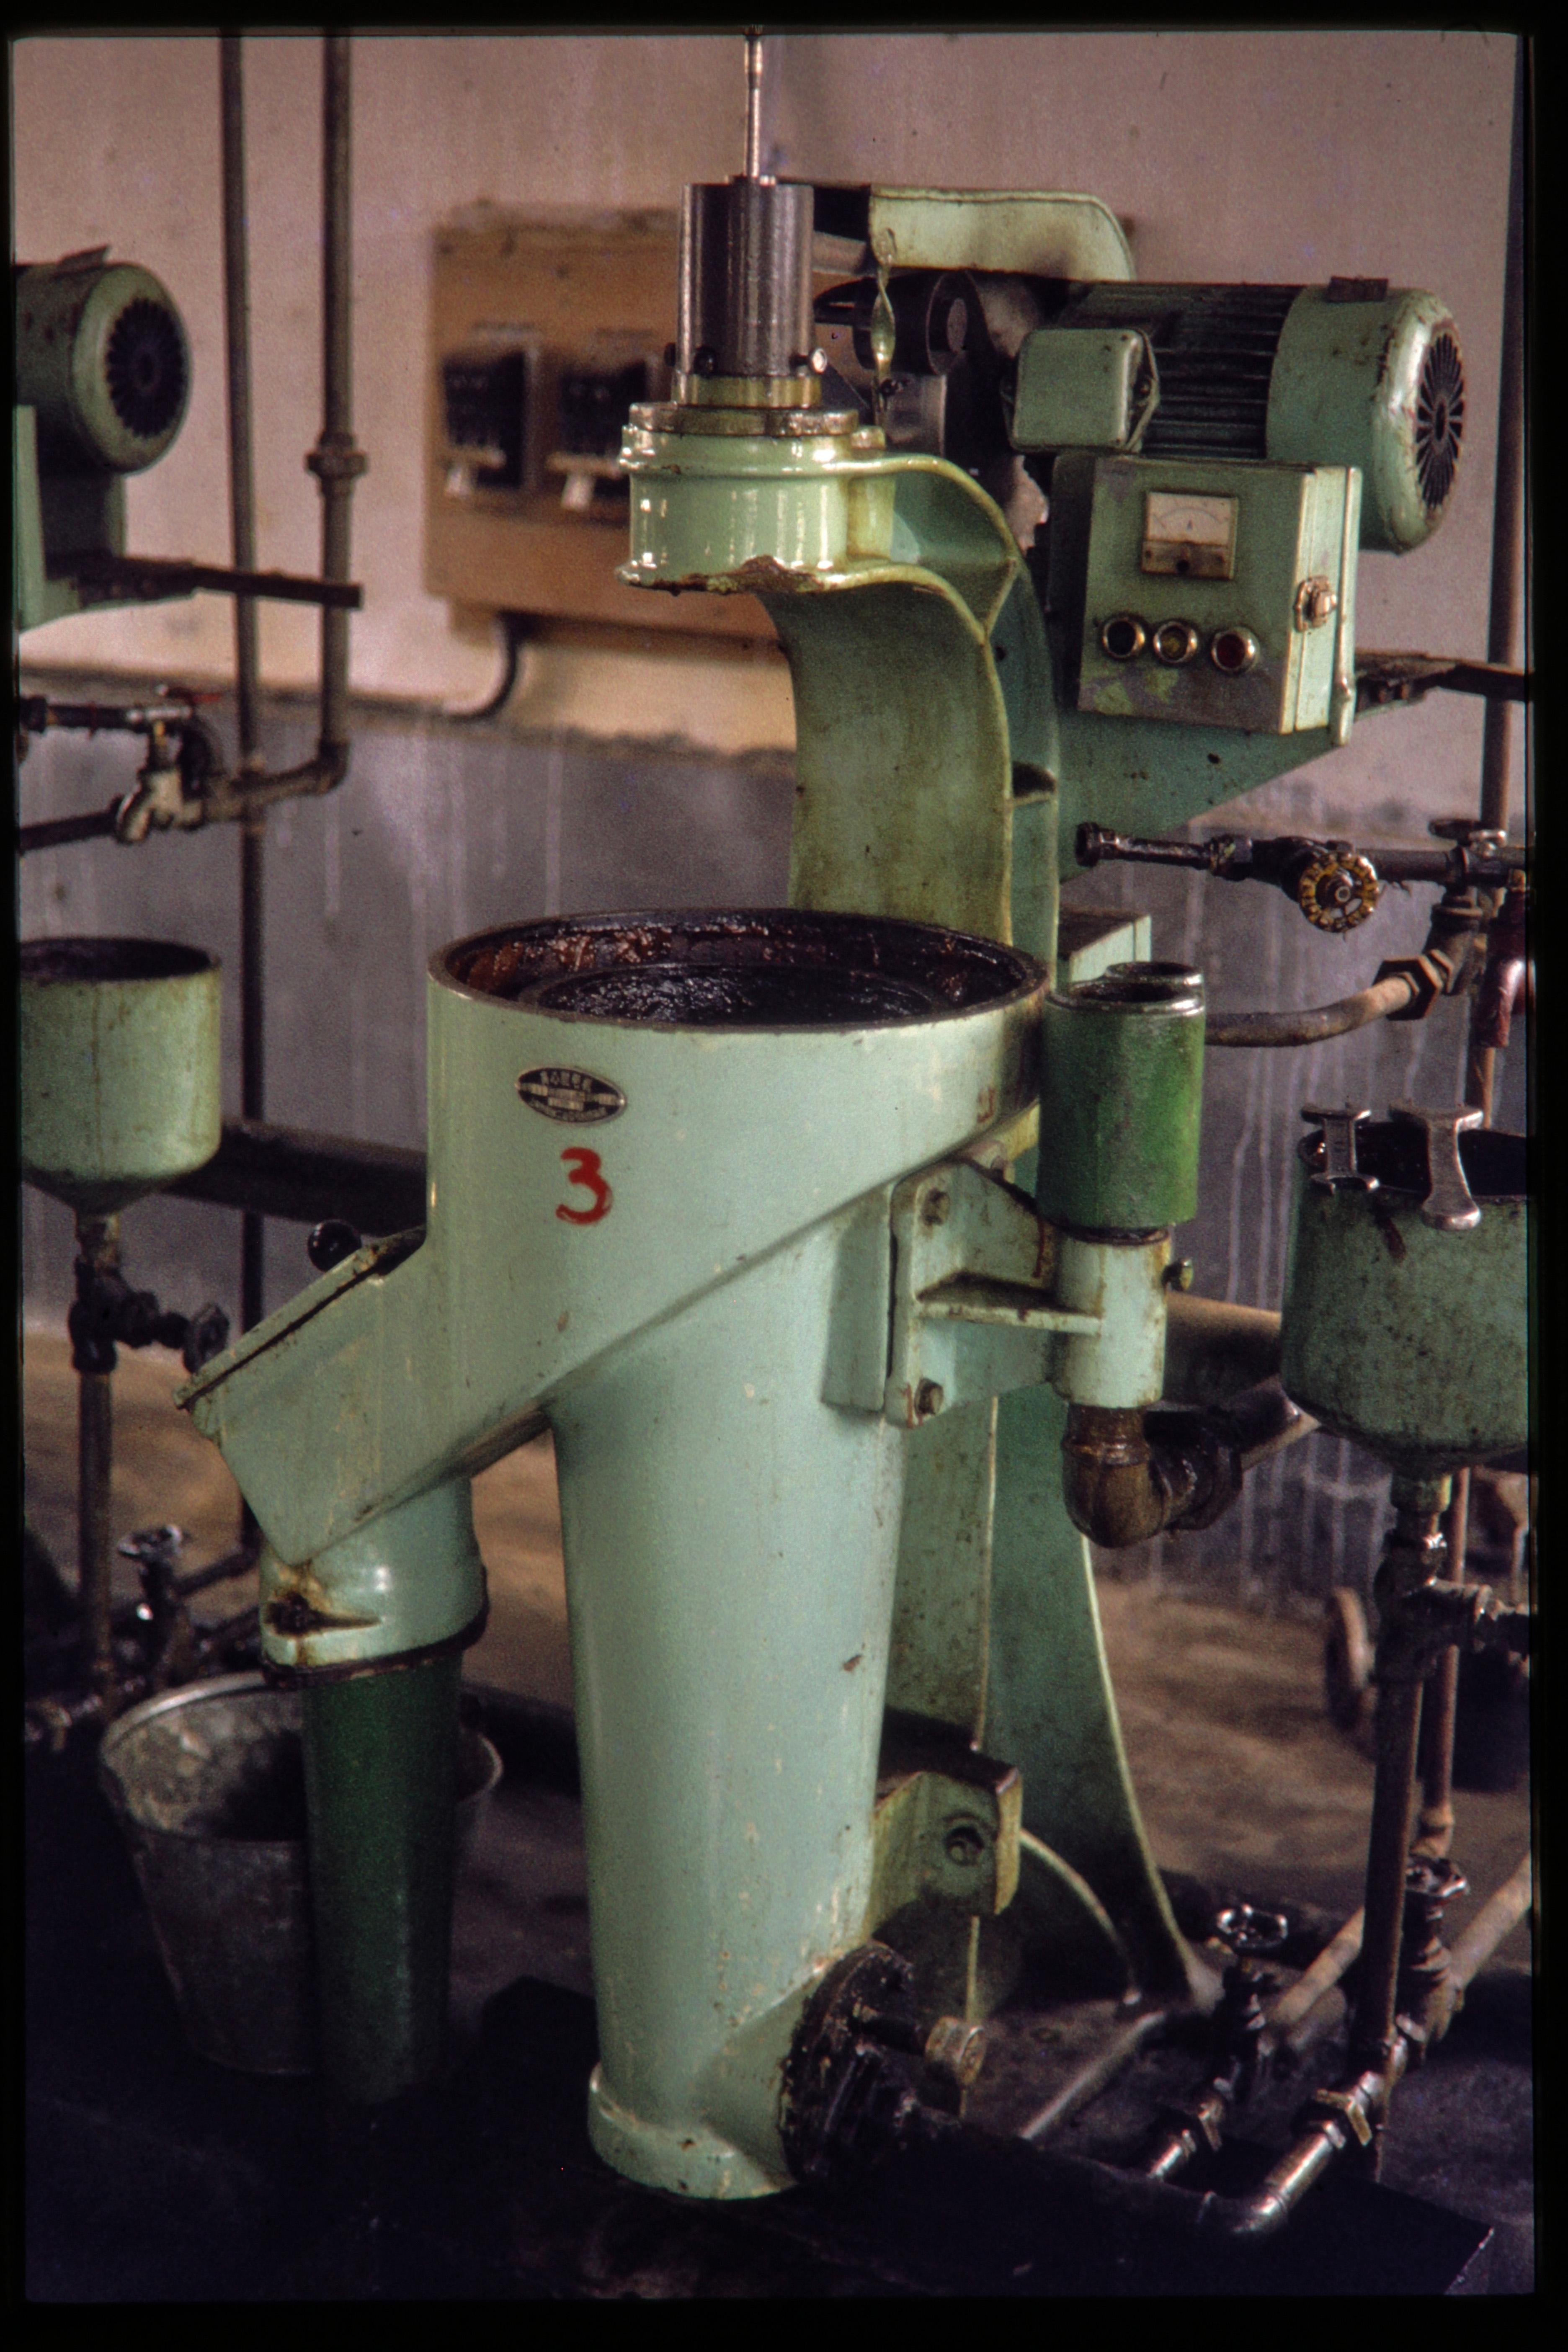 Depiction of Oil processing plant machinery, June 1978